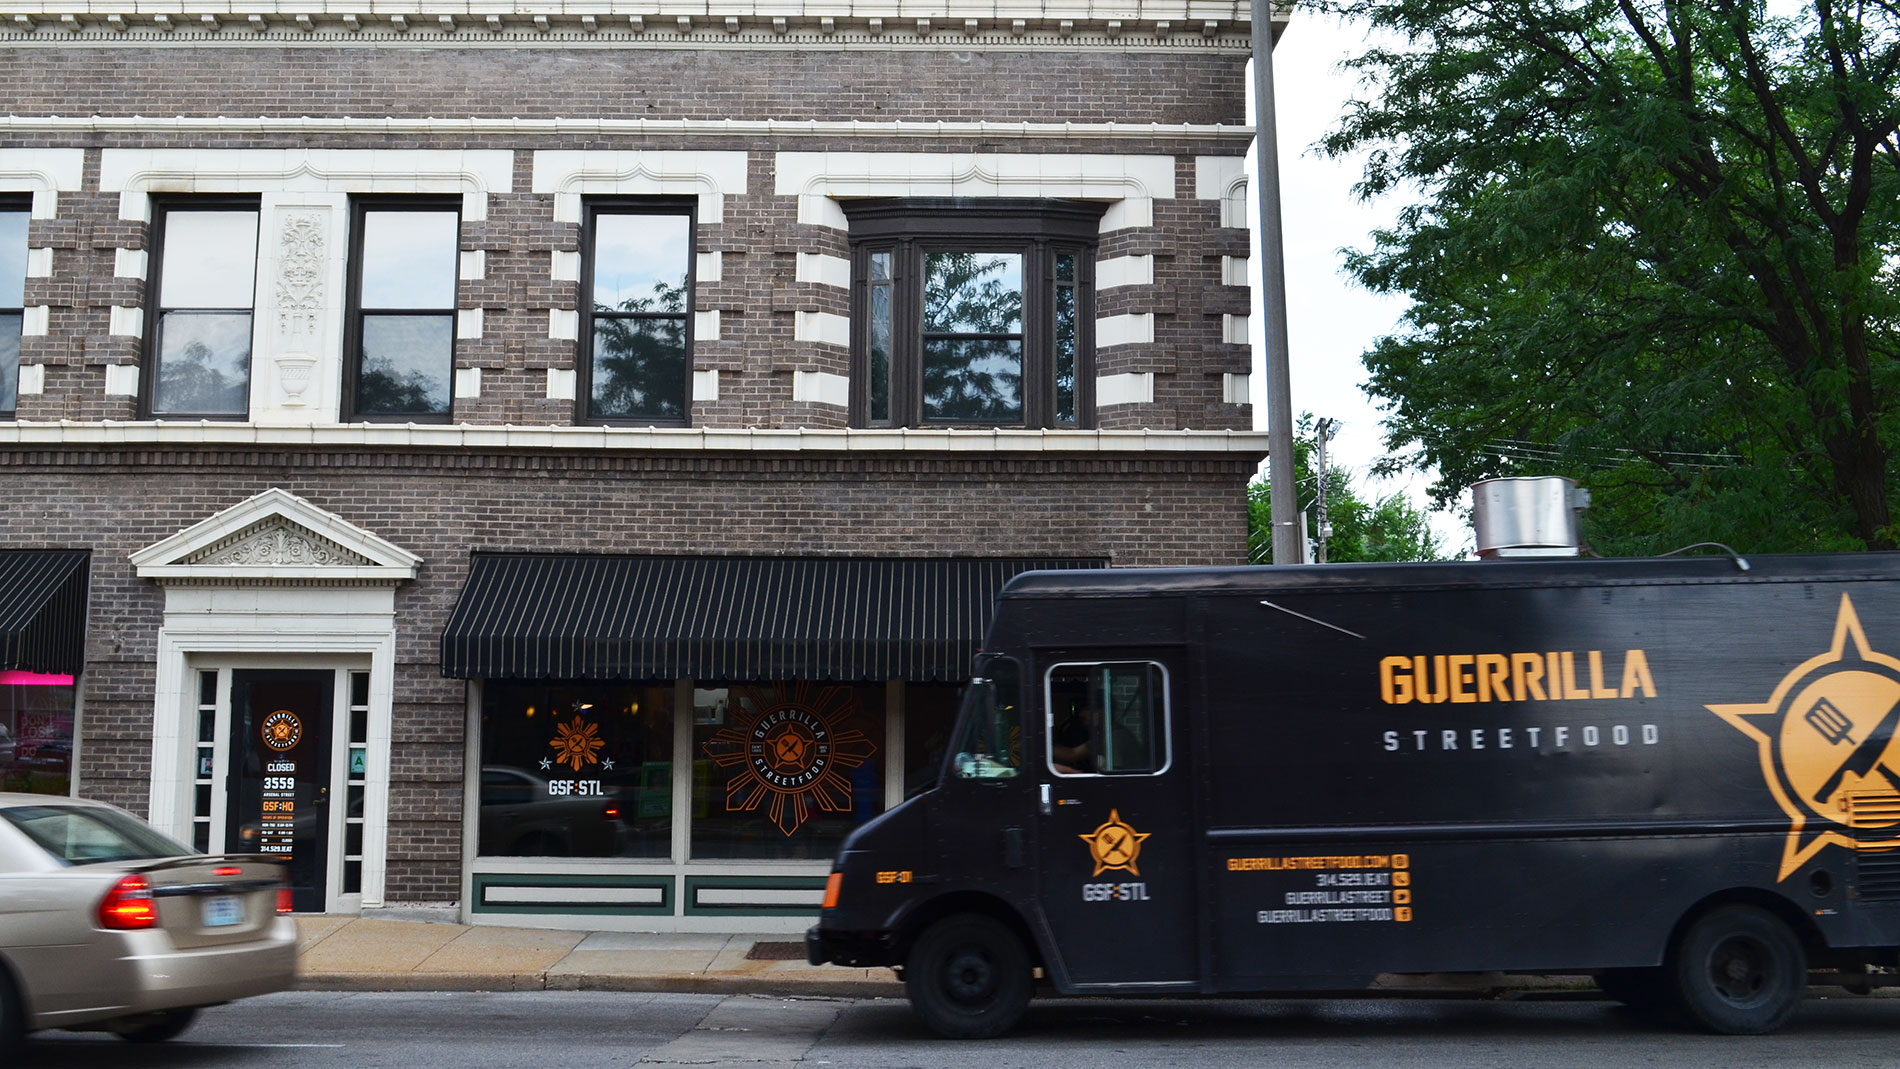 the exterior of a brick building with a food truck in front